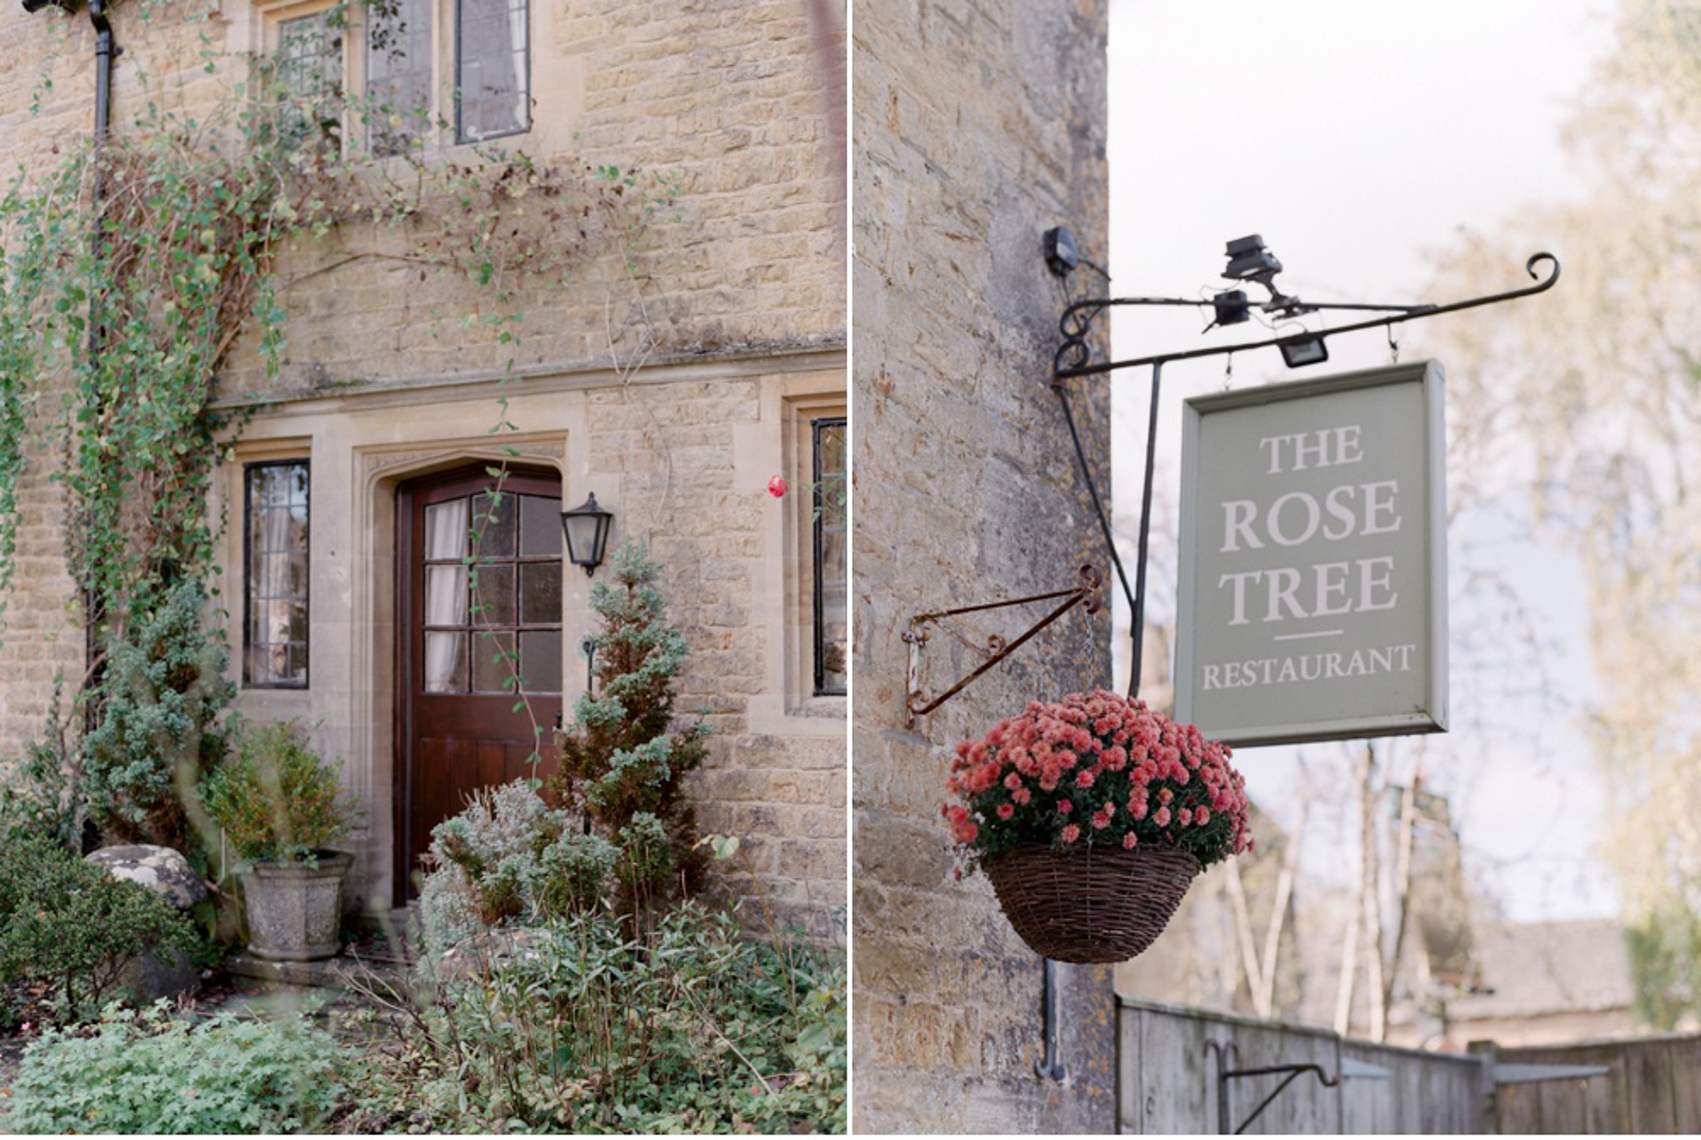 Cotswolds_WeddingPhotographer_UK©MadalinaSheldon_46.jpg